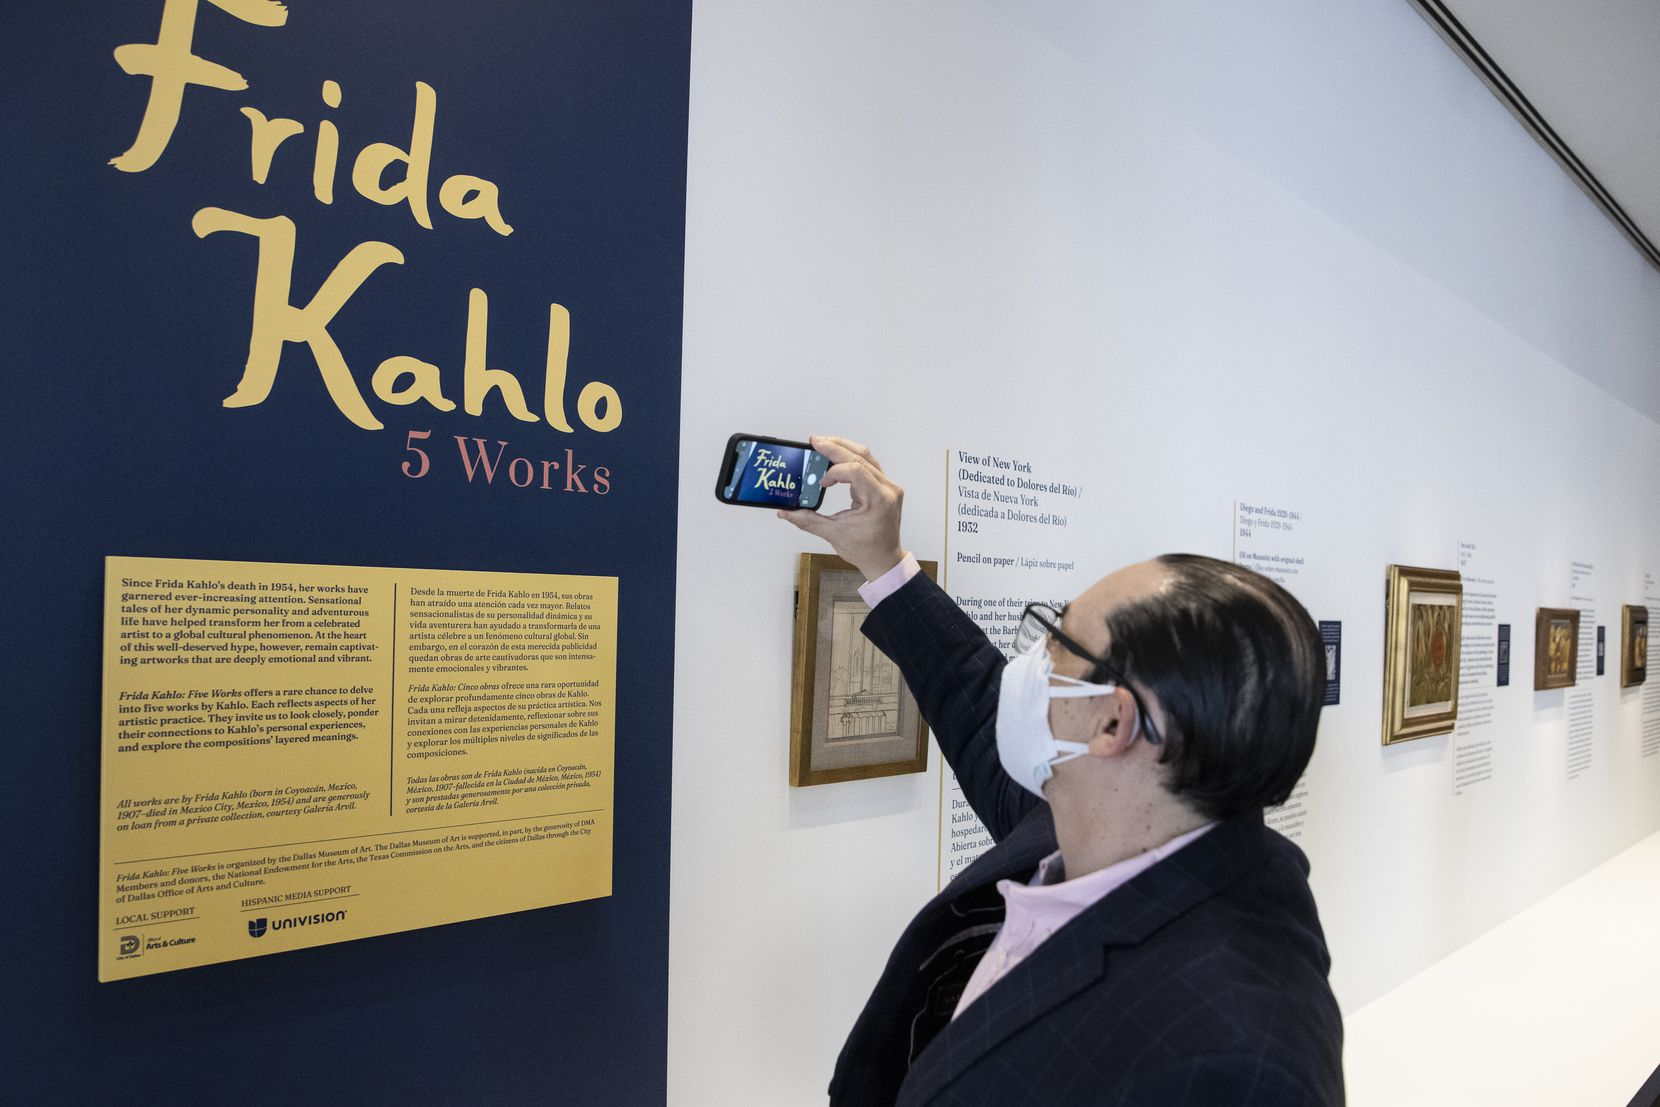 """Consul General of Mexico Francisco de la Torre Galindo takes a photo of the exhibit """"Frida Kahlo: Five Works"""" at the Dallas Museum of Art on Thursday, March 4, 2021."""